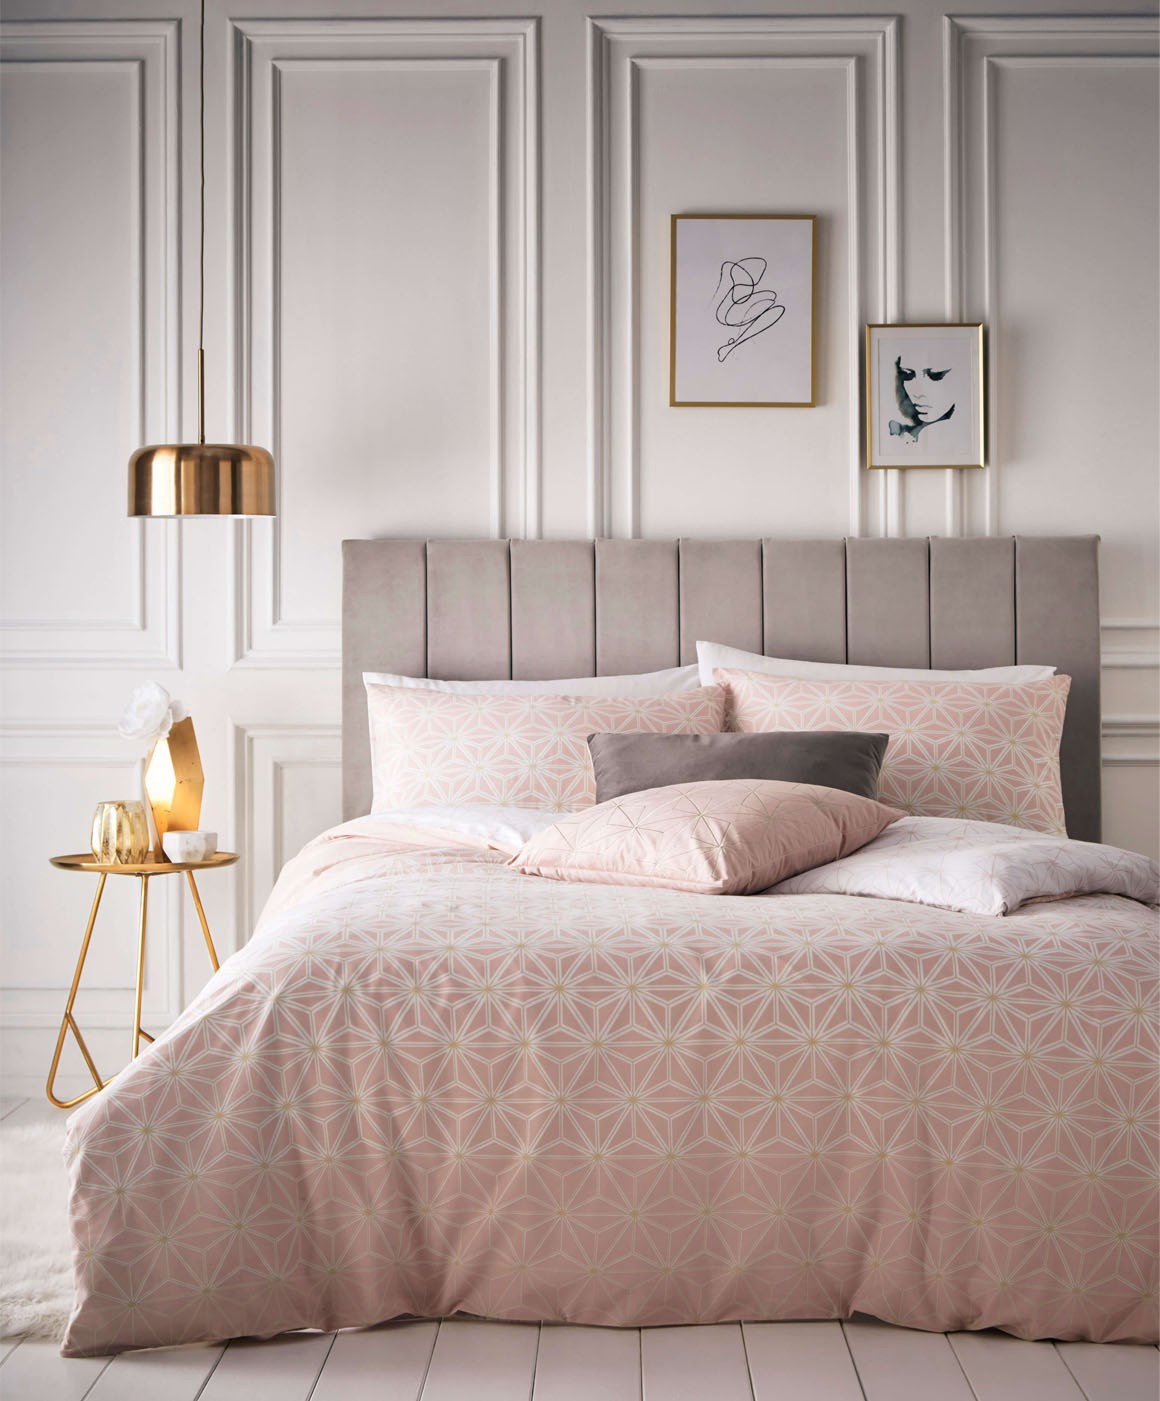 The Home Furnishings Company Tessellate Blush/Gold Duvet Cover and Matching Pillow Cases